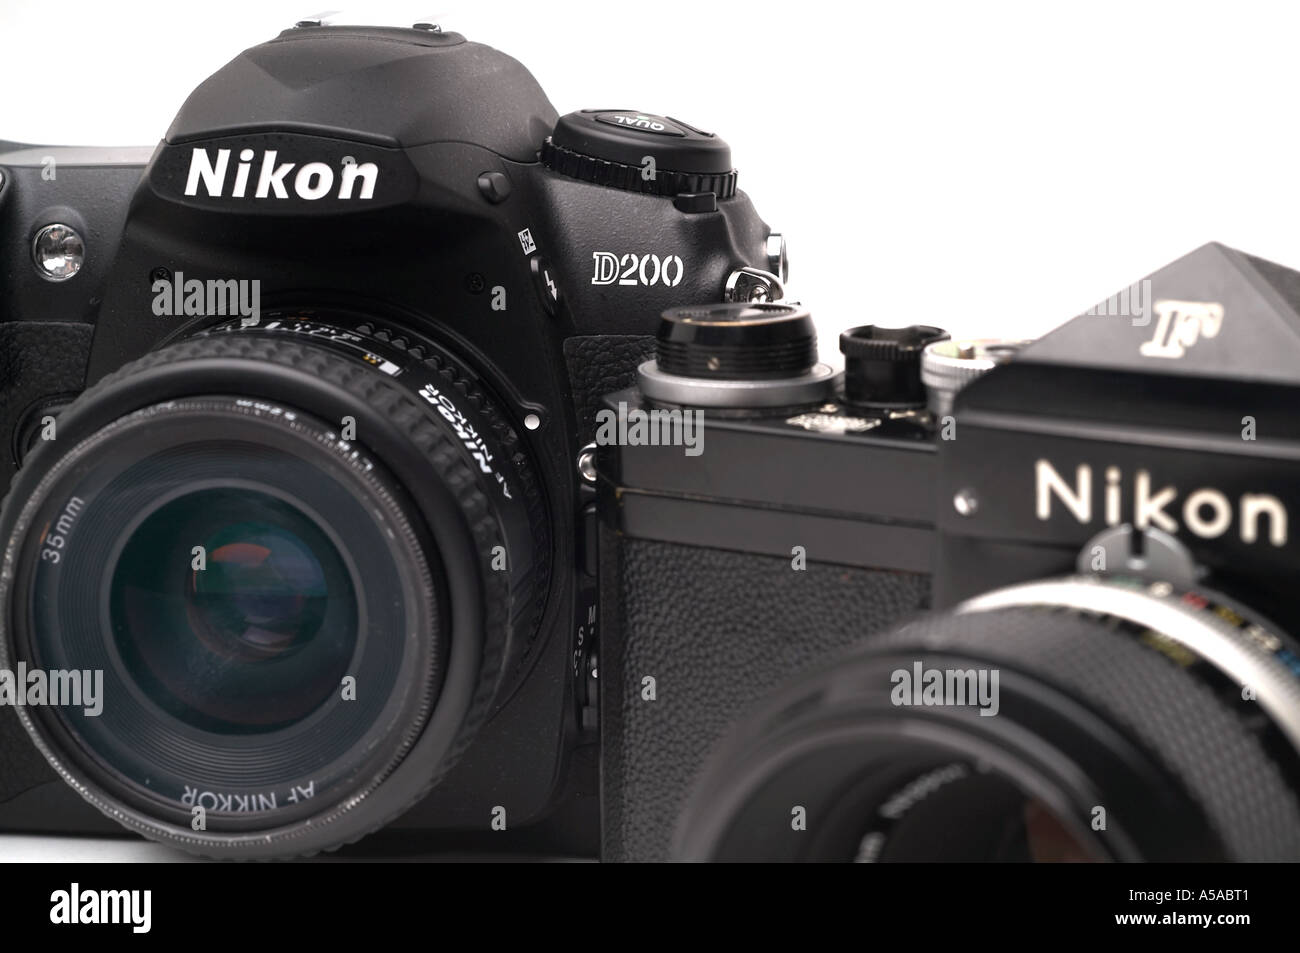 Camera Nikon D200 Dslr Camera nikon d200 digital slr camera f 35 mm film stock photo